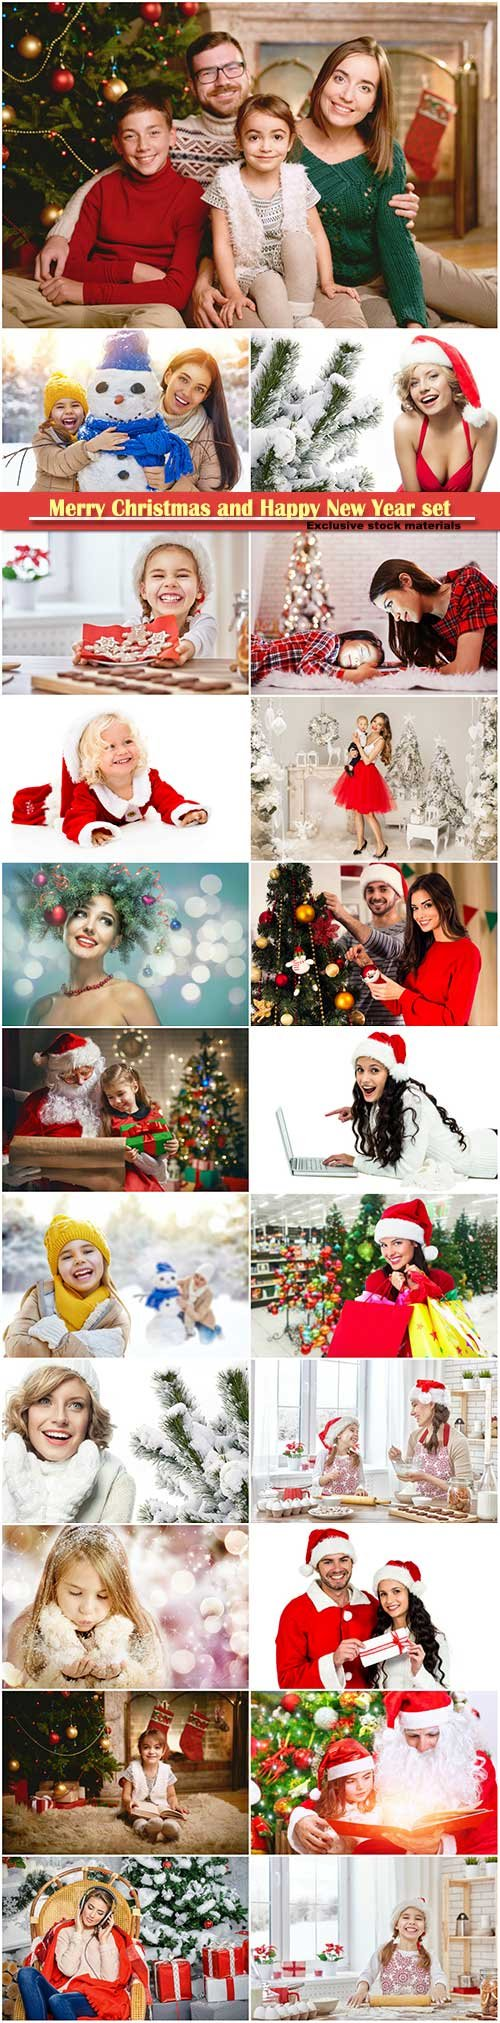 Merry Christmas and Happy New Year stock set